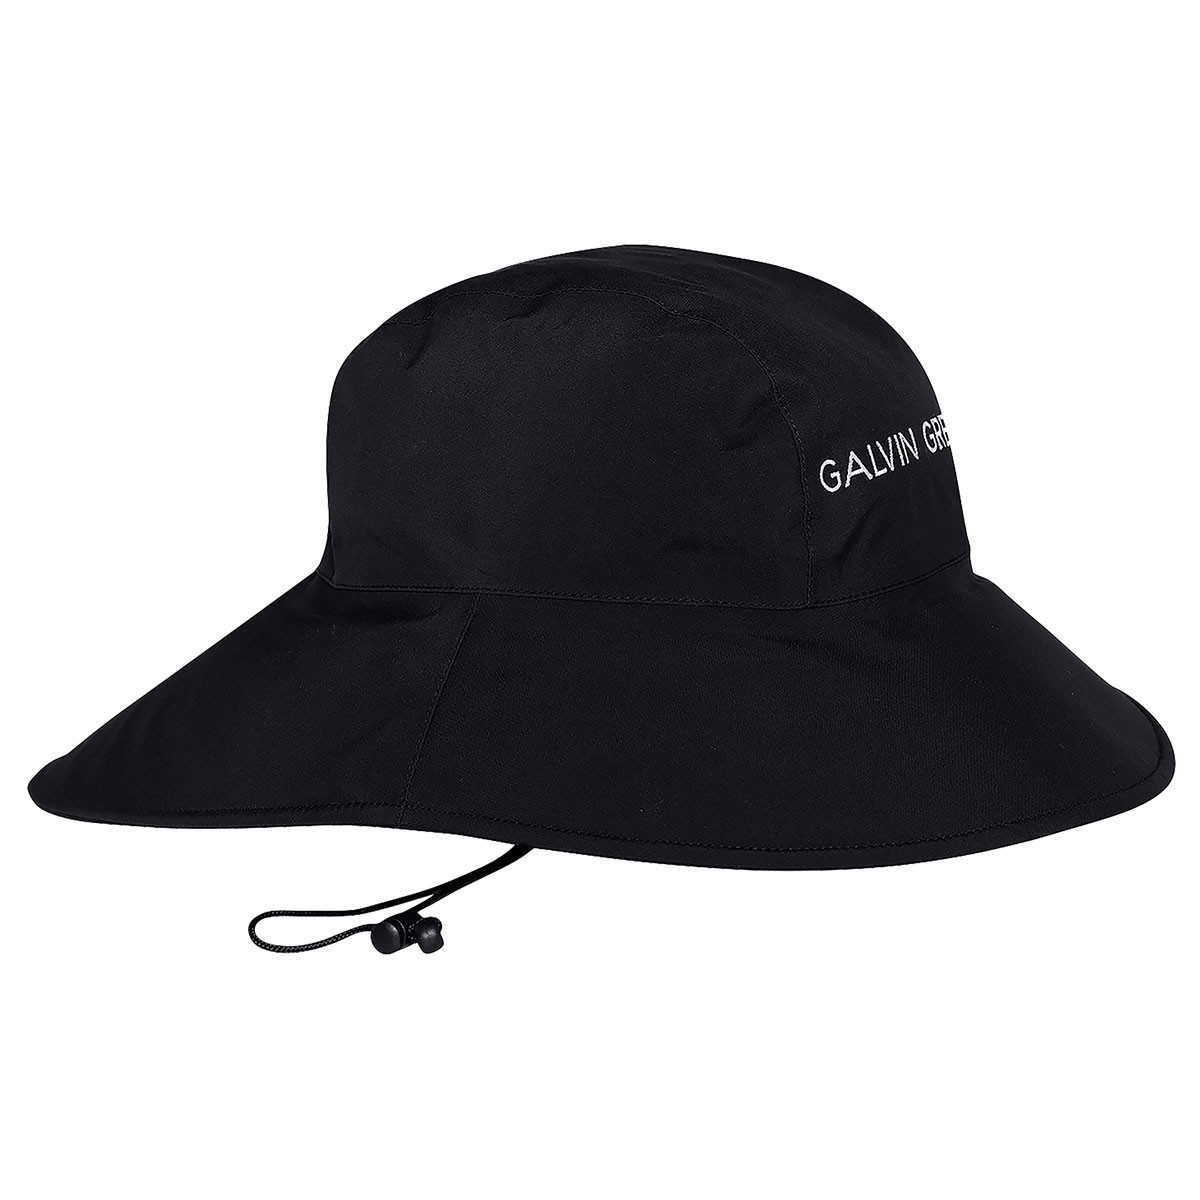 56e8a22e2b5 Galvin Green Mens SS19 Waterproof Aqua Gore-Tex Golf Bucket Hat